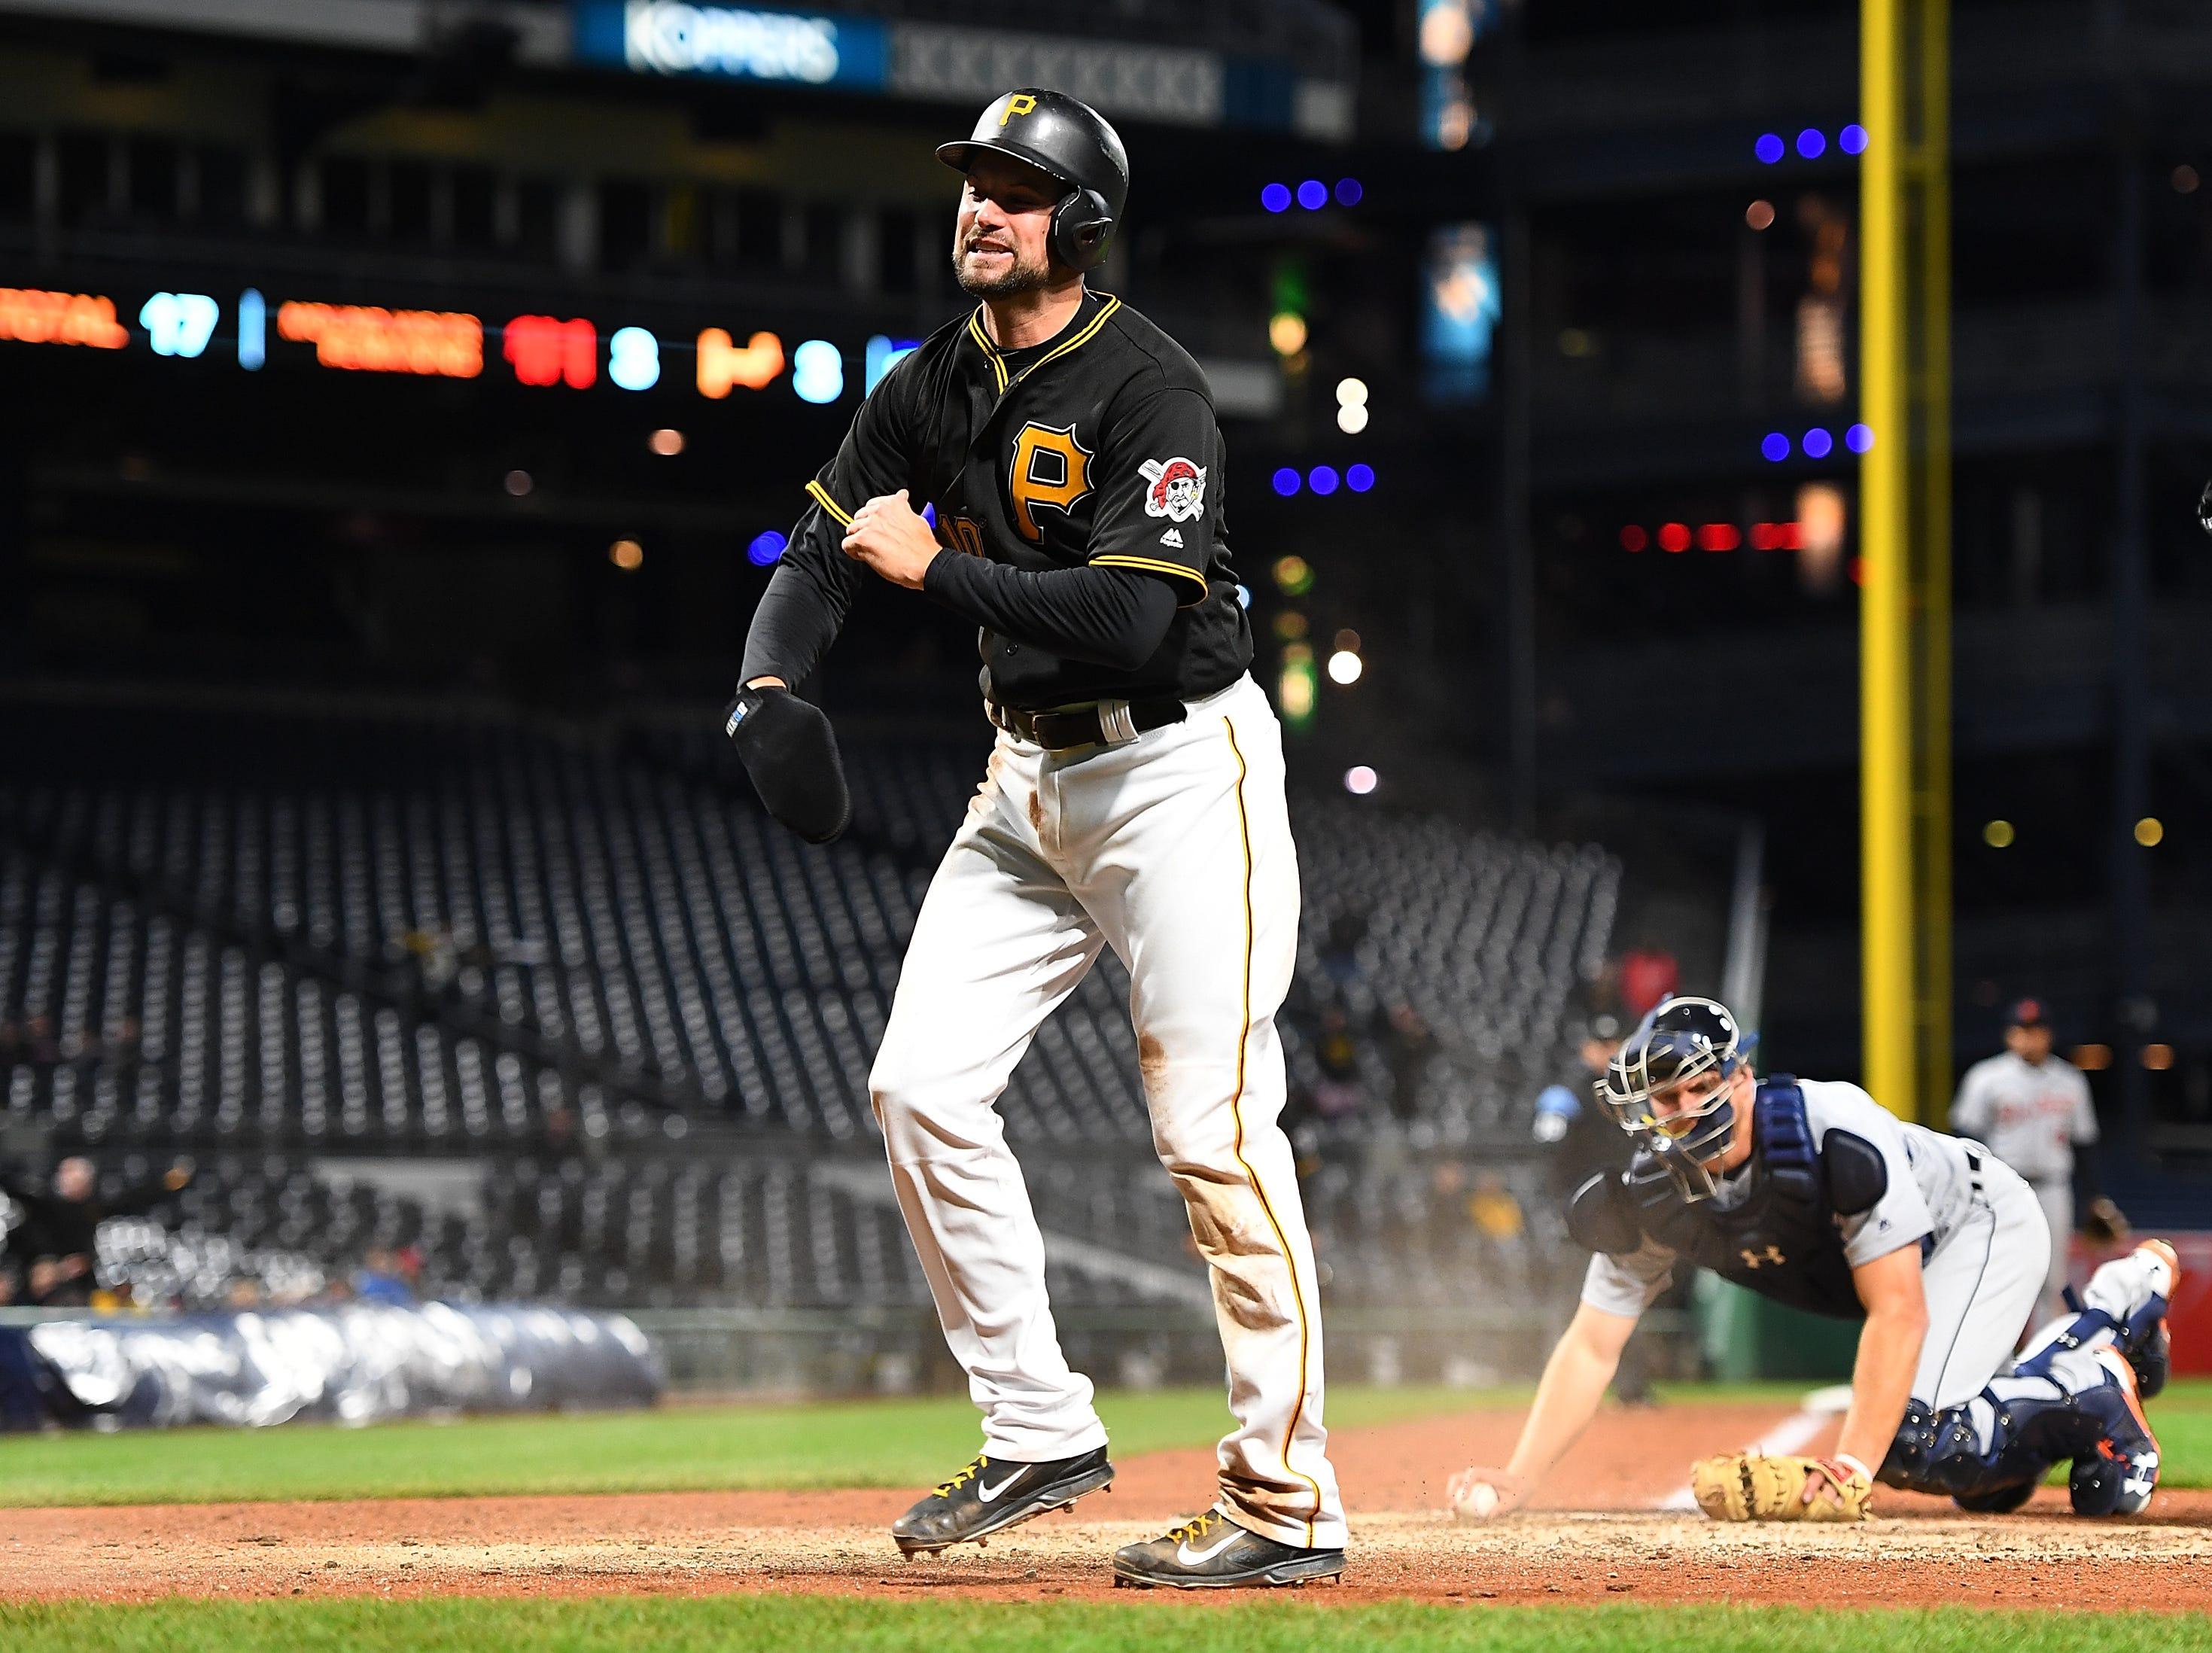 Jordy Mercer of the Pittsburgh Pirates reacts after scoring in the eighth inning against the Detroit Tigers in the eighth inning during Game 2 of a doubleheader at PNC Park on April 25, 2018 in Pittsburgh, Pennsylvania.